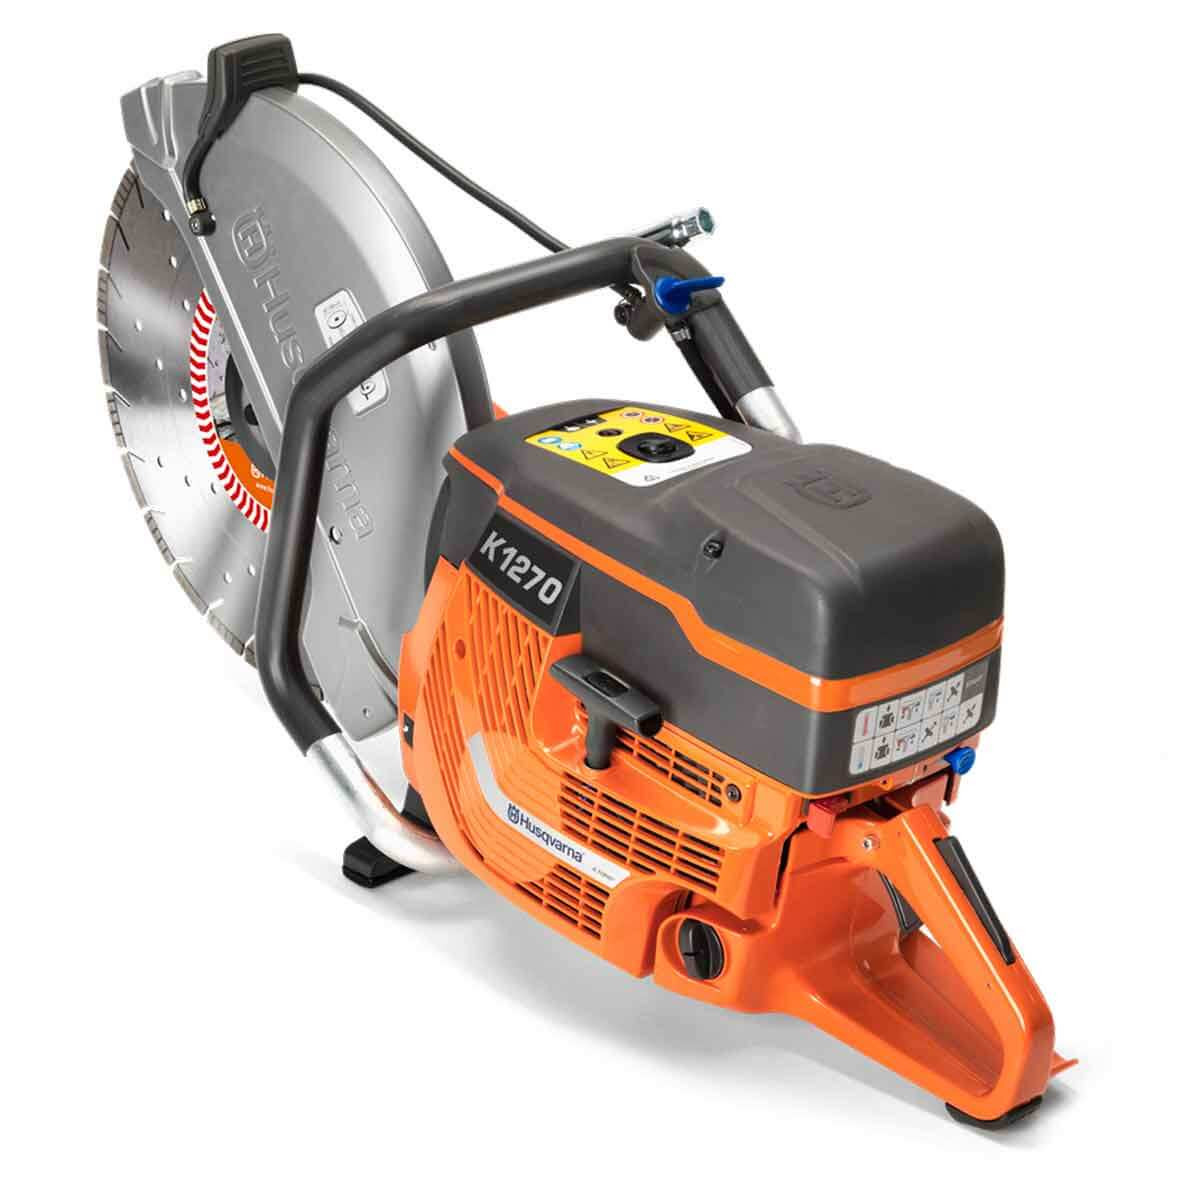 Husqvarna K1260 high speed saw